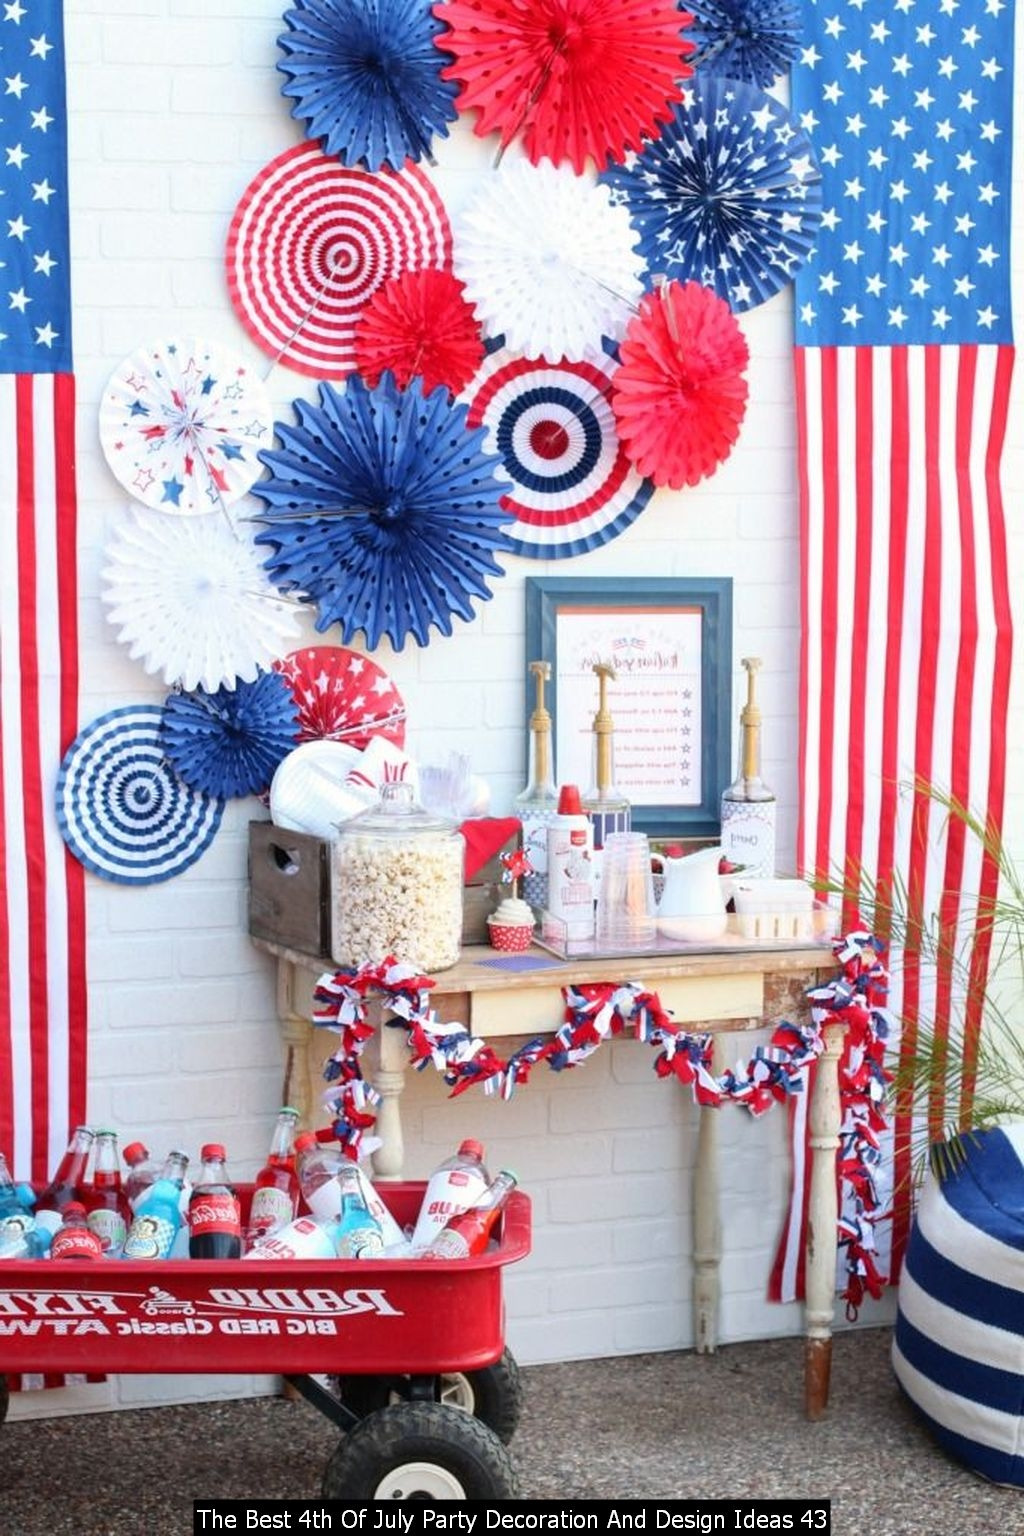 The Best 4th Of July Party Decoration And Design Ideas 43